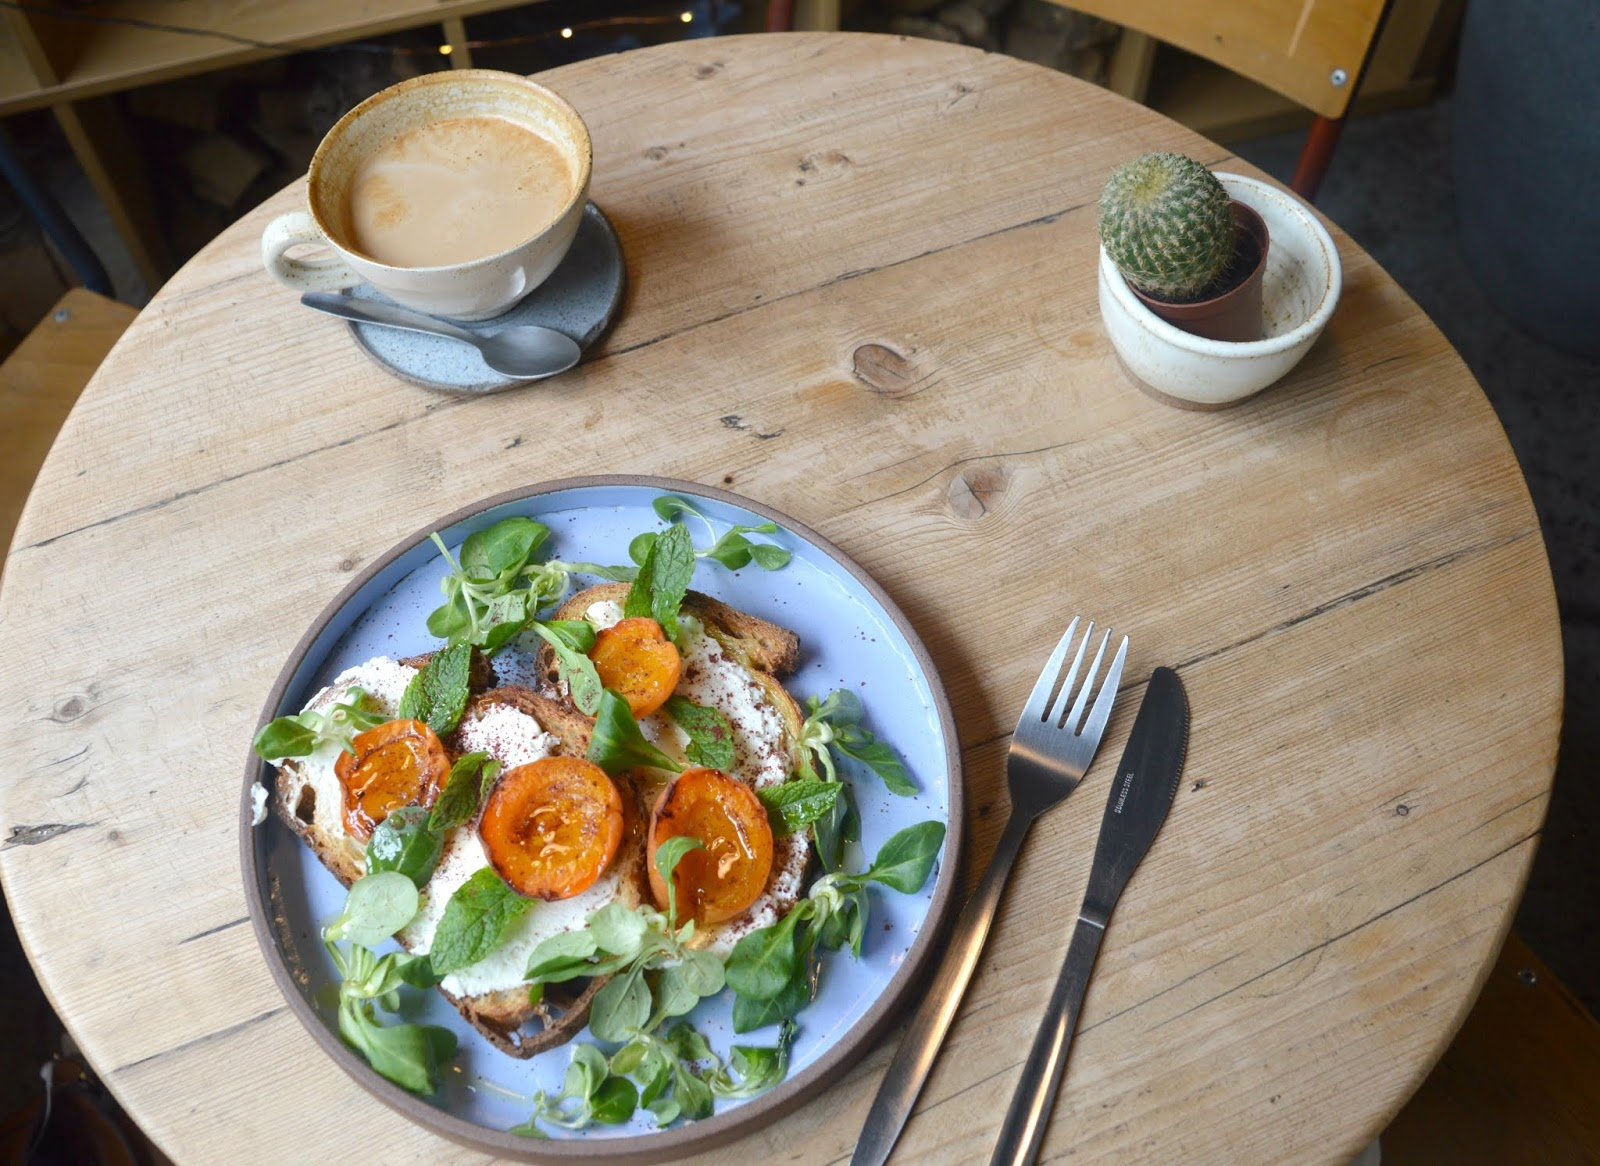 Breakfast at Kiln, Ouseburn - Brunch